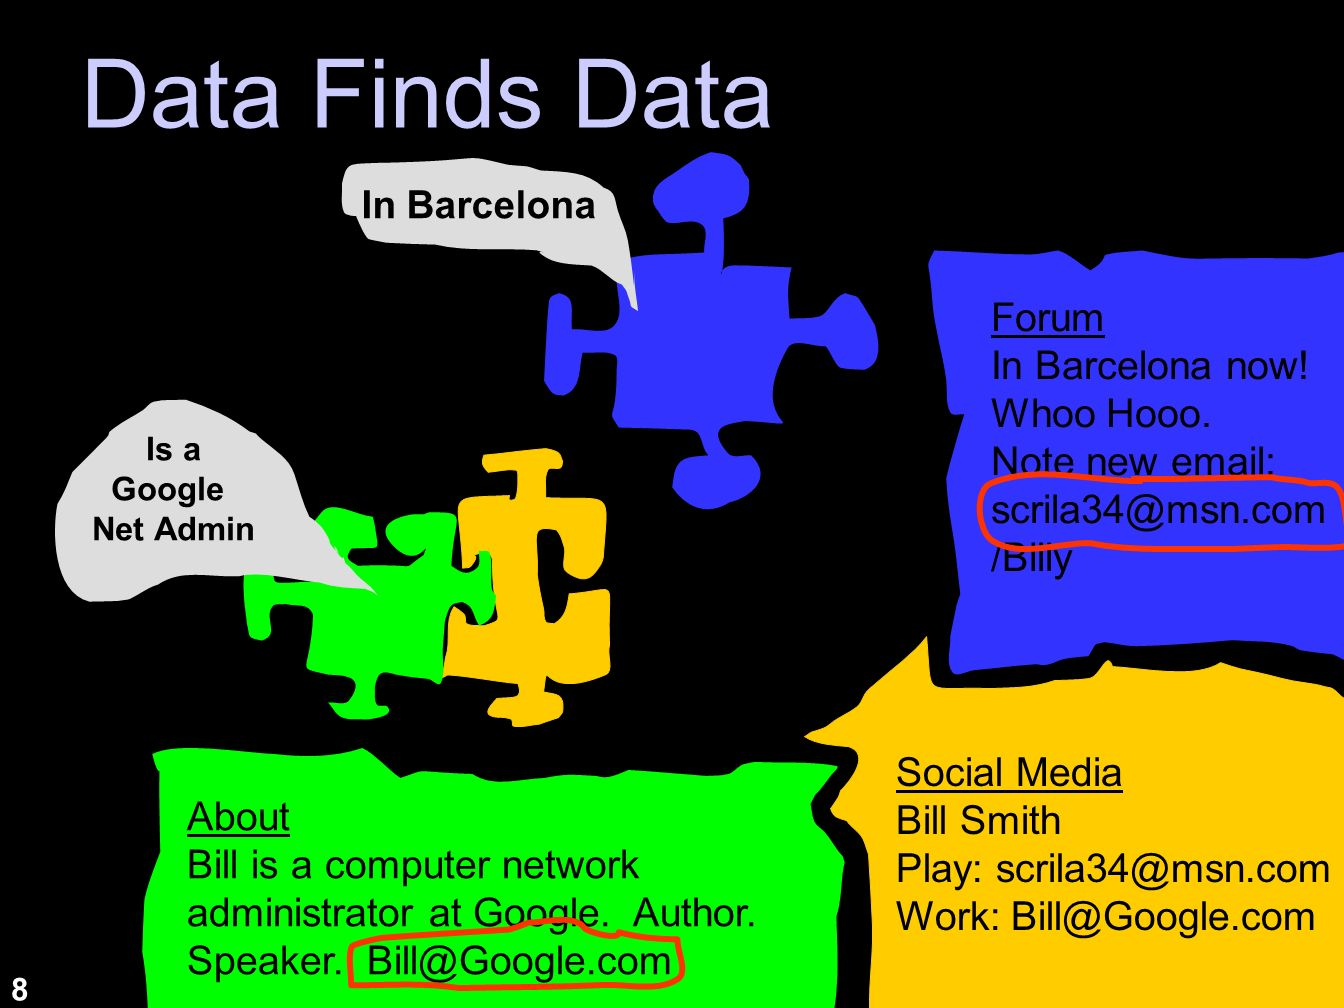 8 Social Media Bill Smith Play: scrila34@msn.com Work: Bill@Google.com Data Finds Data About Bill is a computer network administrator at Google. Autho